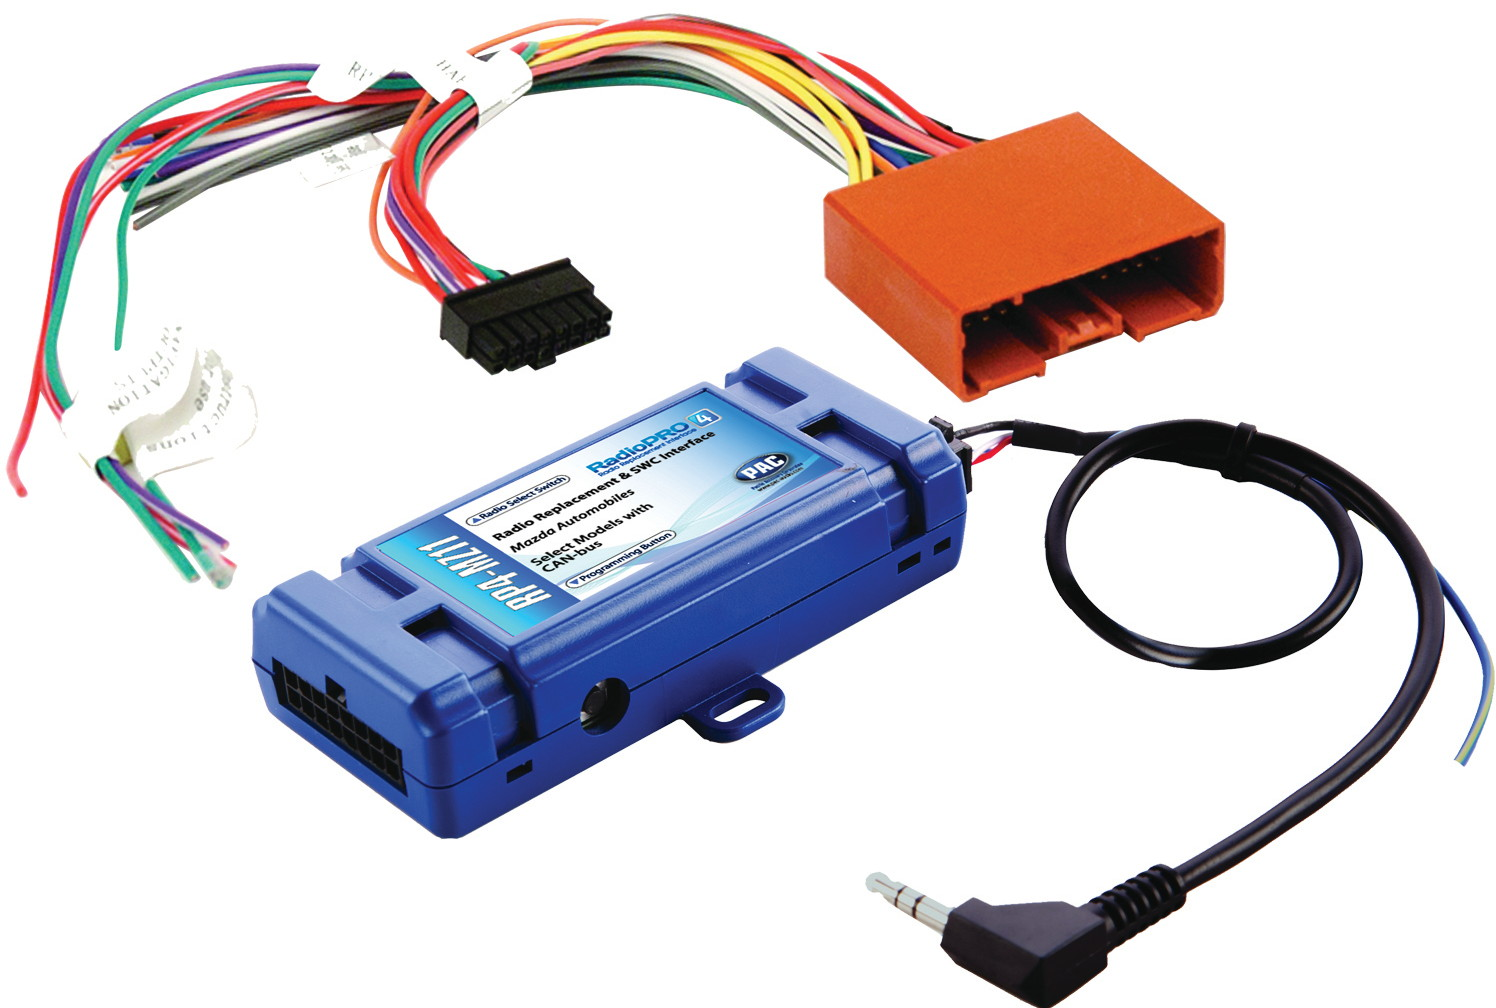 PAC RP4-MZ11 Radio Replacement Interface With Built In Pre ...